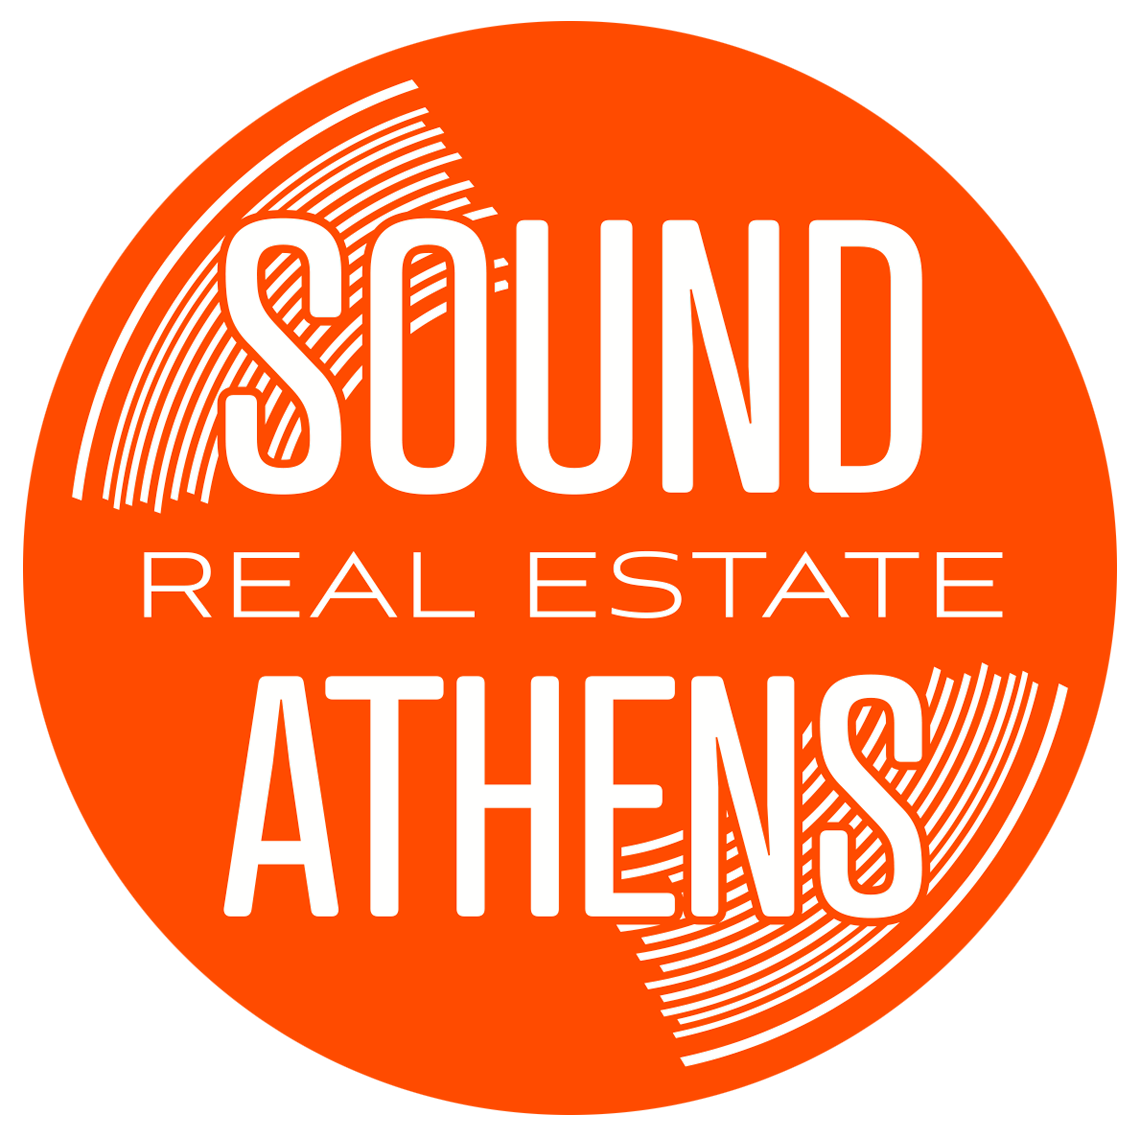 SoundRealEstateAthens_SM.png